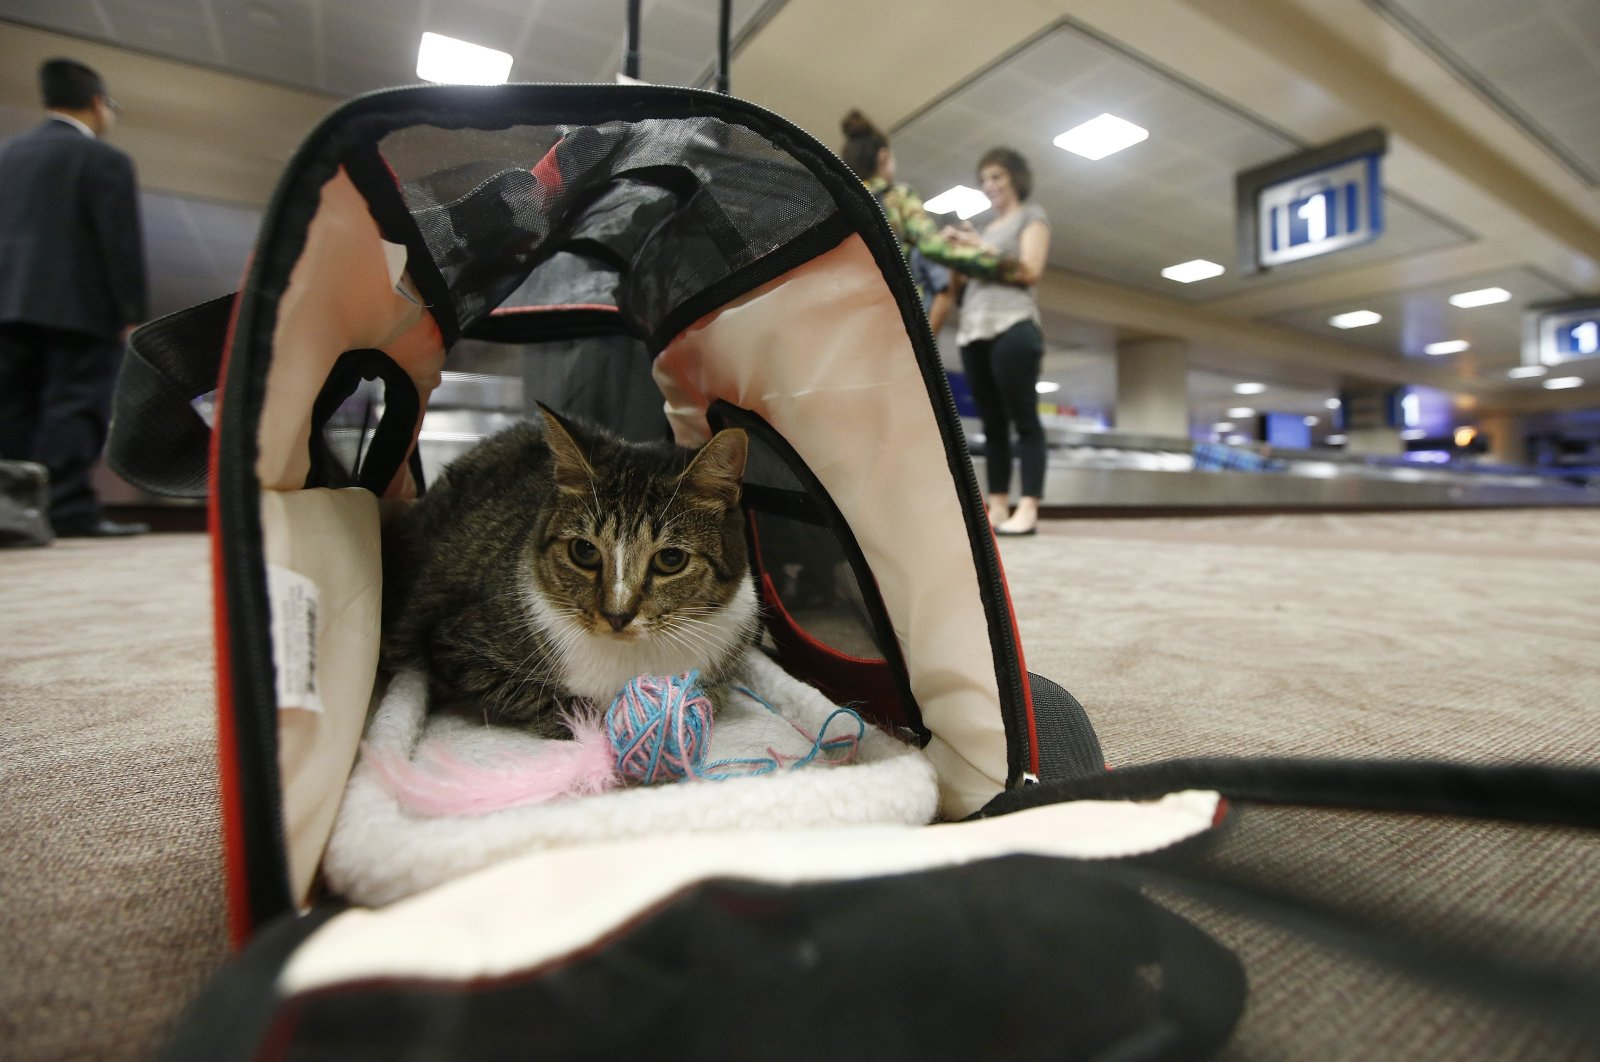 In this file photo, Oscar the cat sits in his carrier after arriving at Phoenix Sky Harbor International Airport in Phoenix, Sept. 20, 2017. (AP Photo)